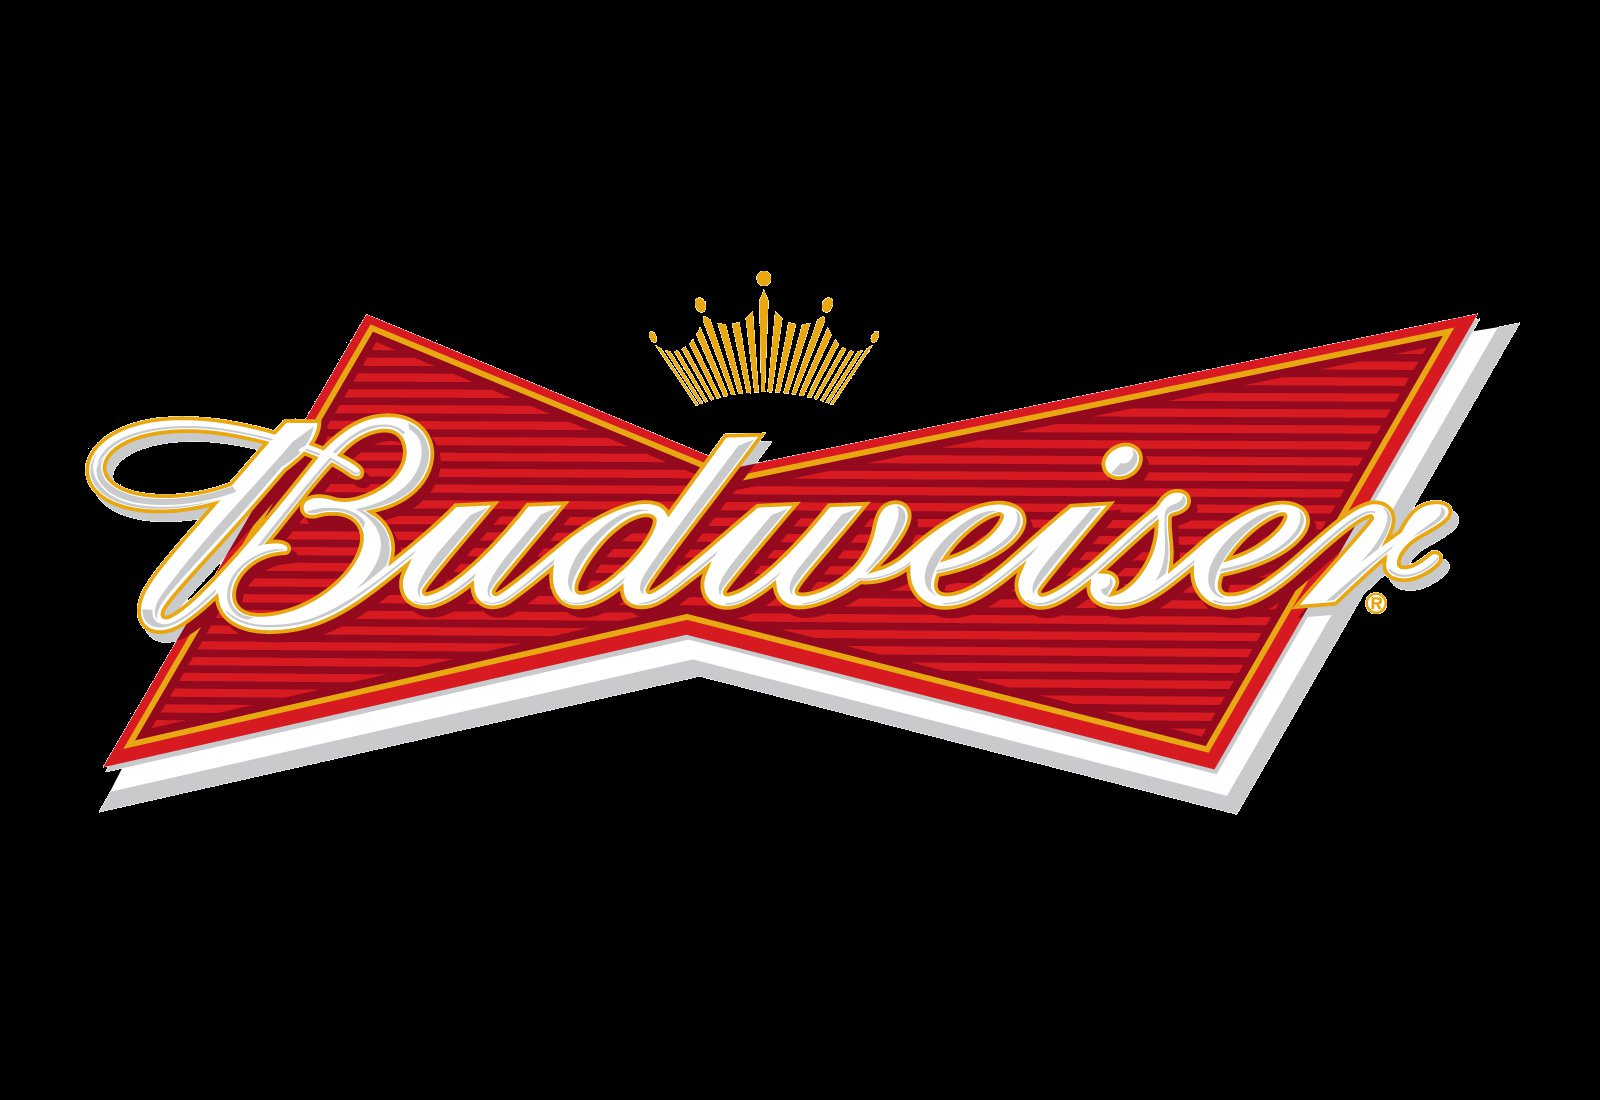 Meaning Budweiser logo and symbol.